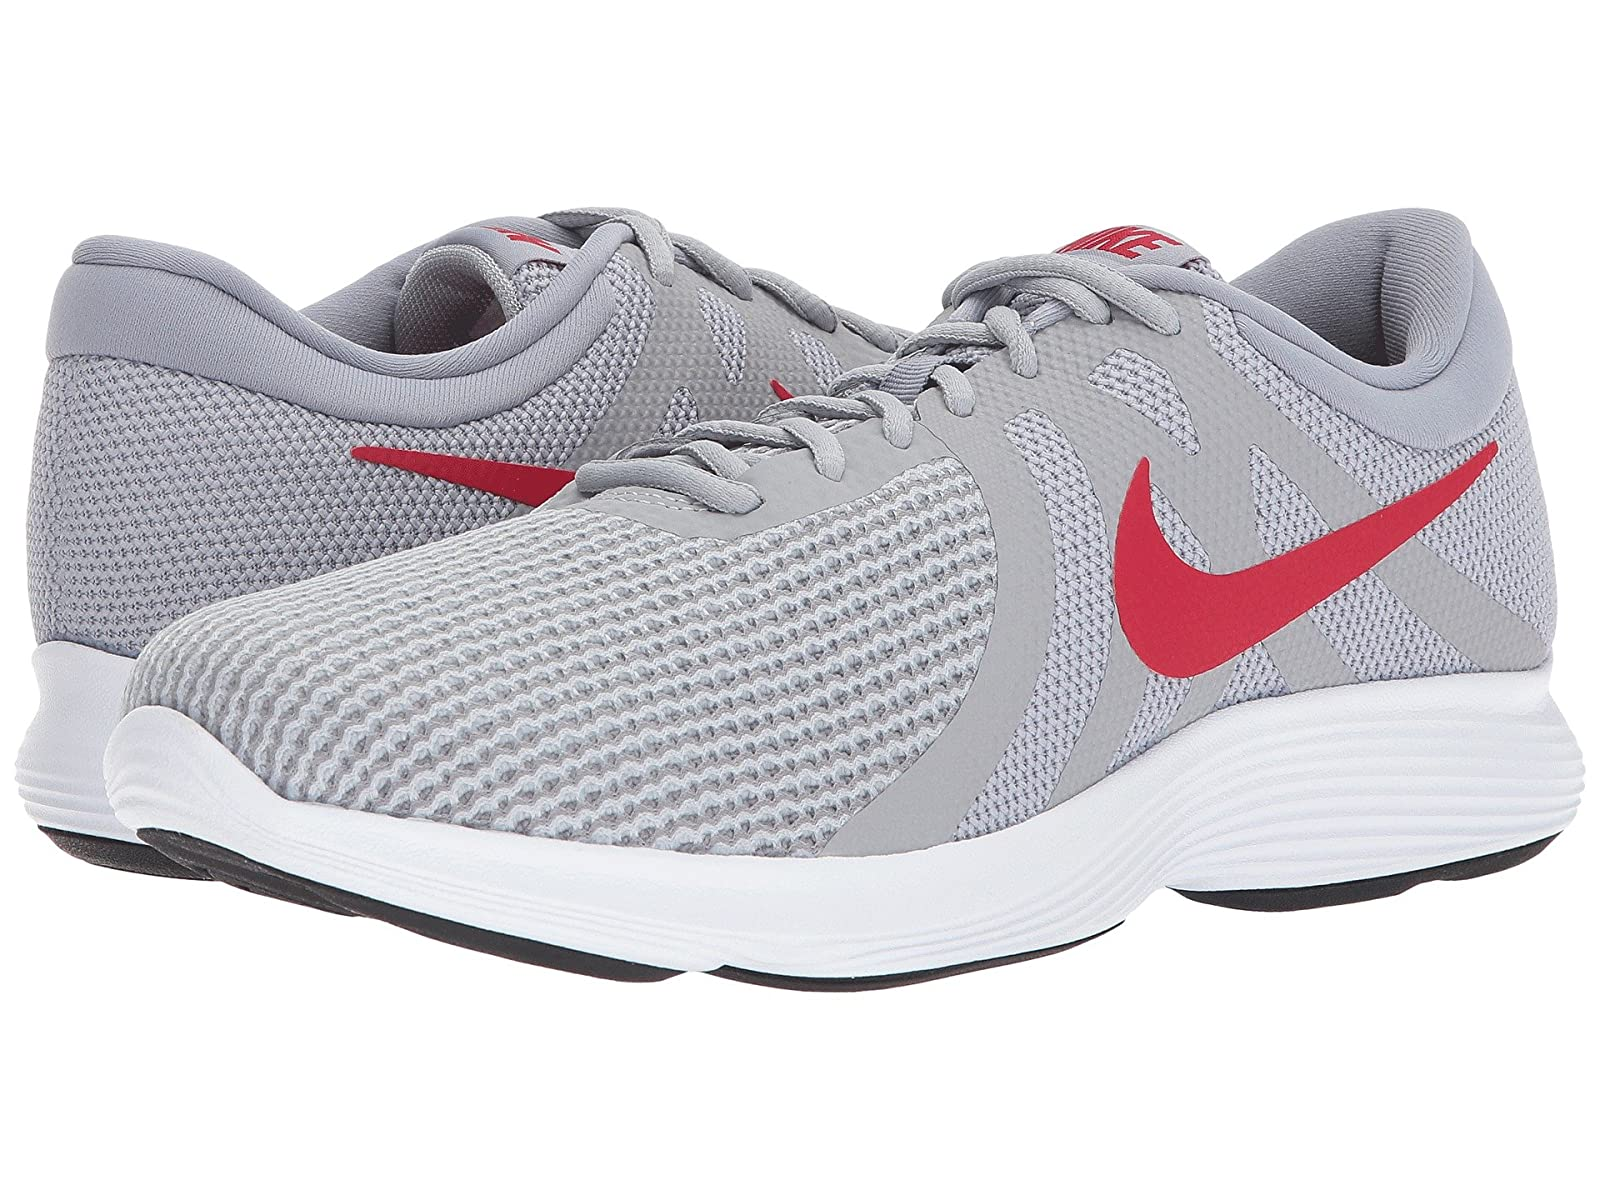 Nike Revolution 4Atmospheric grades have affordable shoes